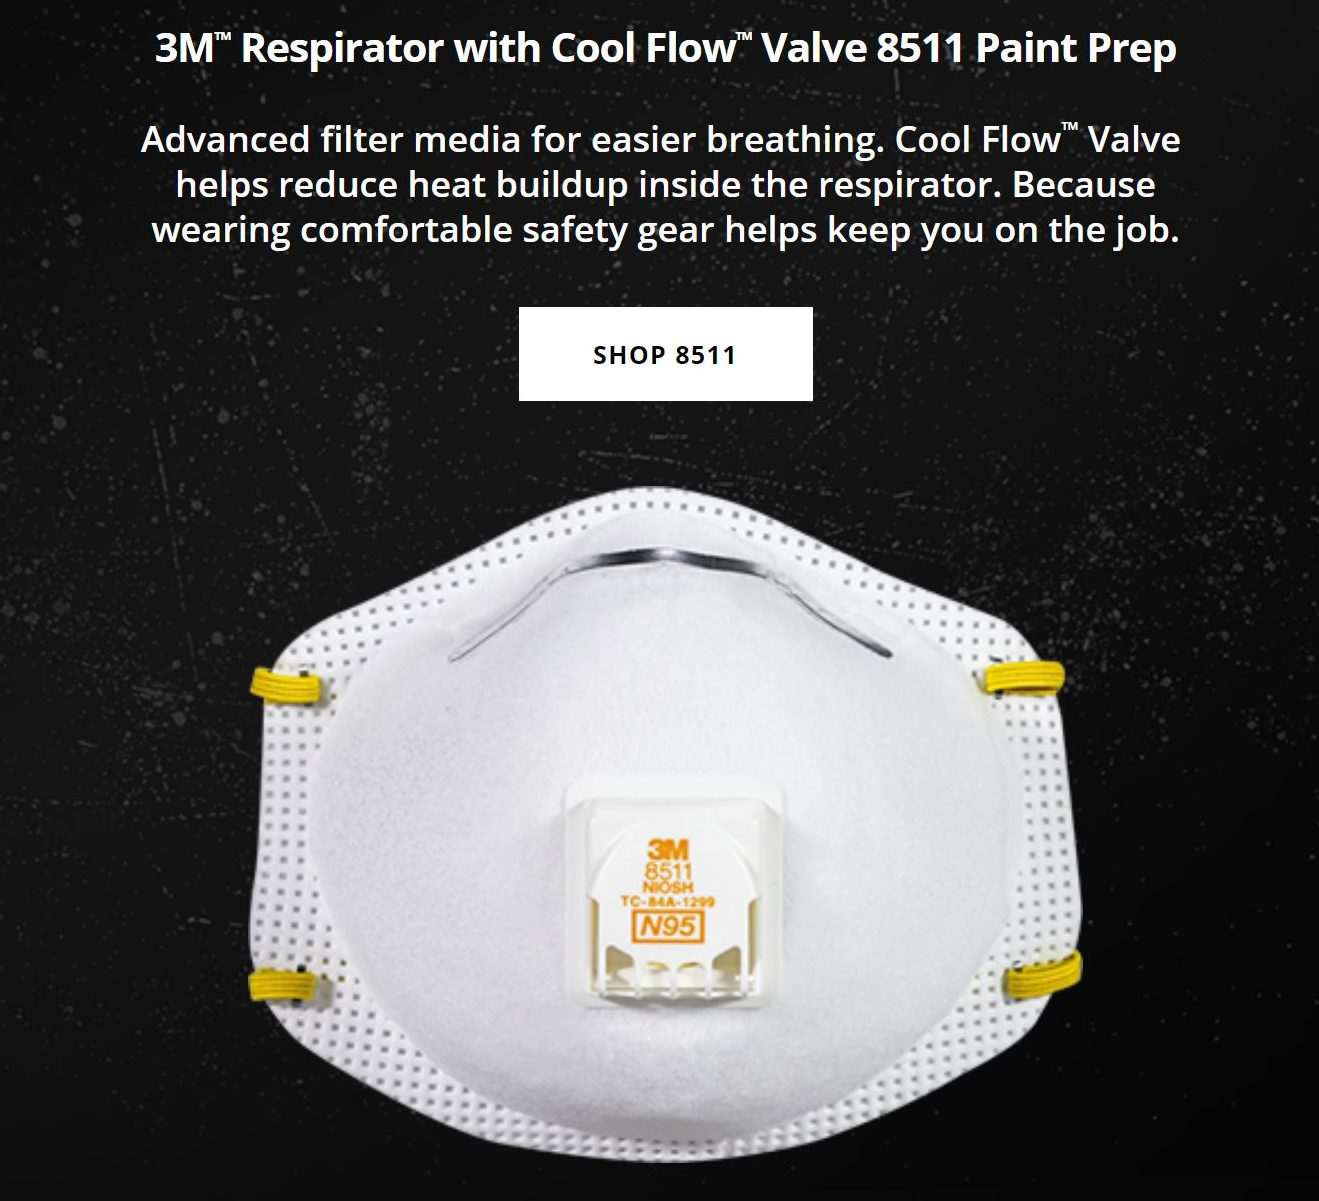 3M respirators with Cool Flow valve for better breathing.